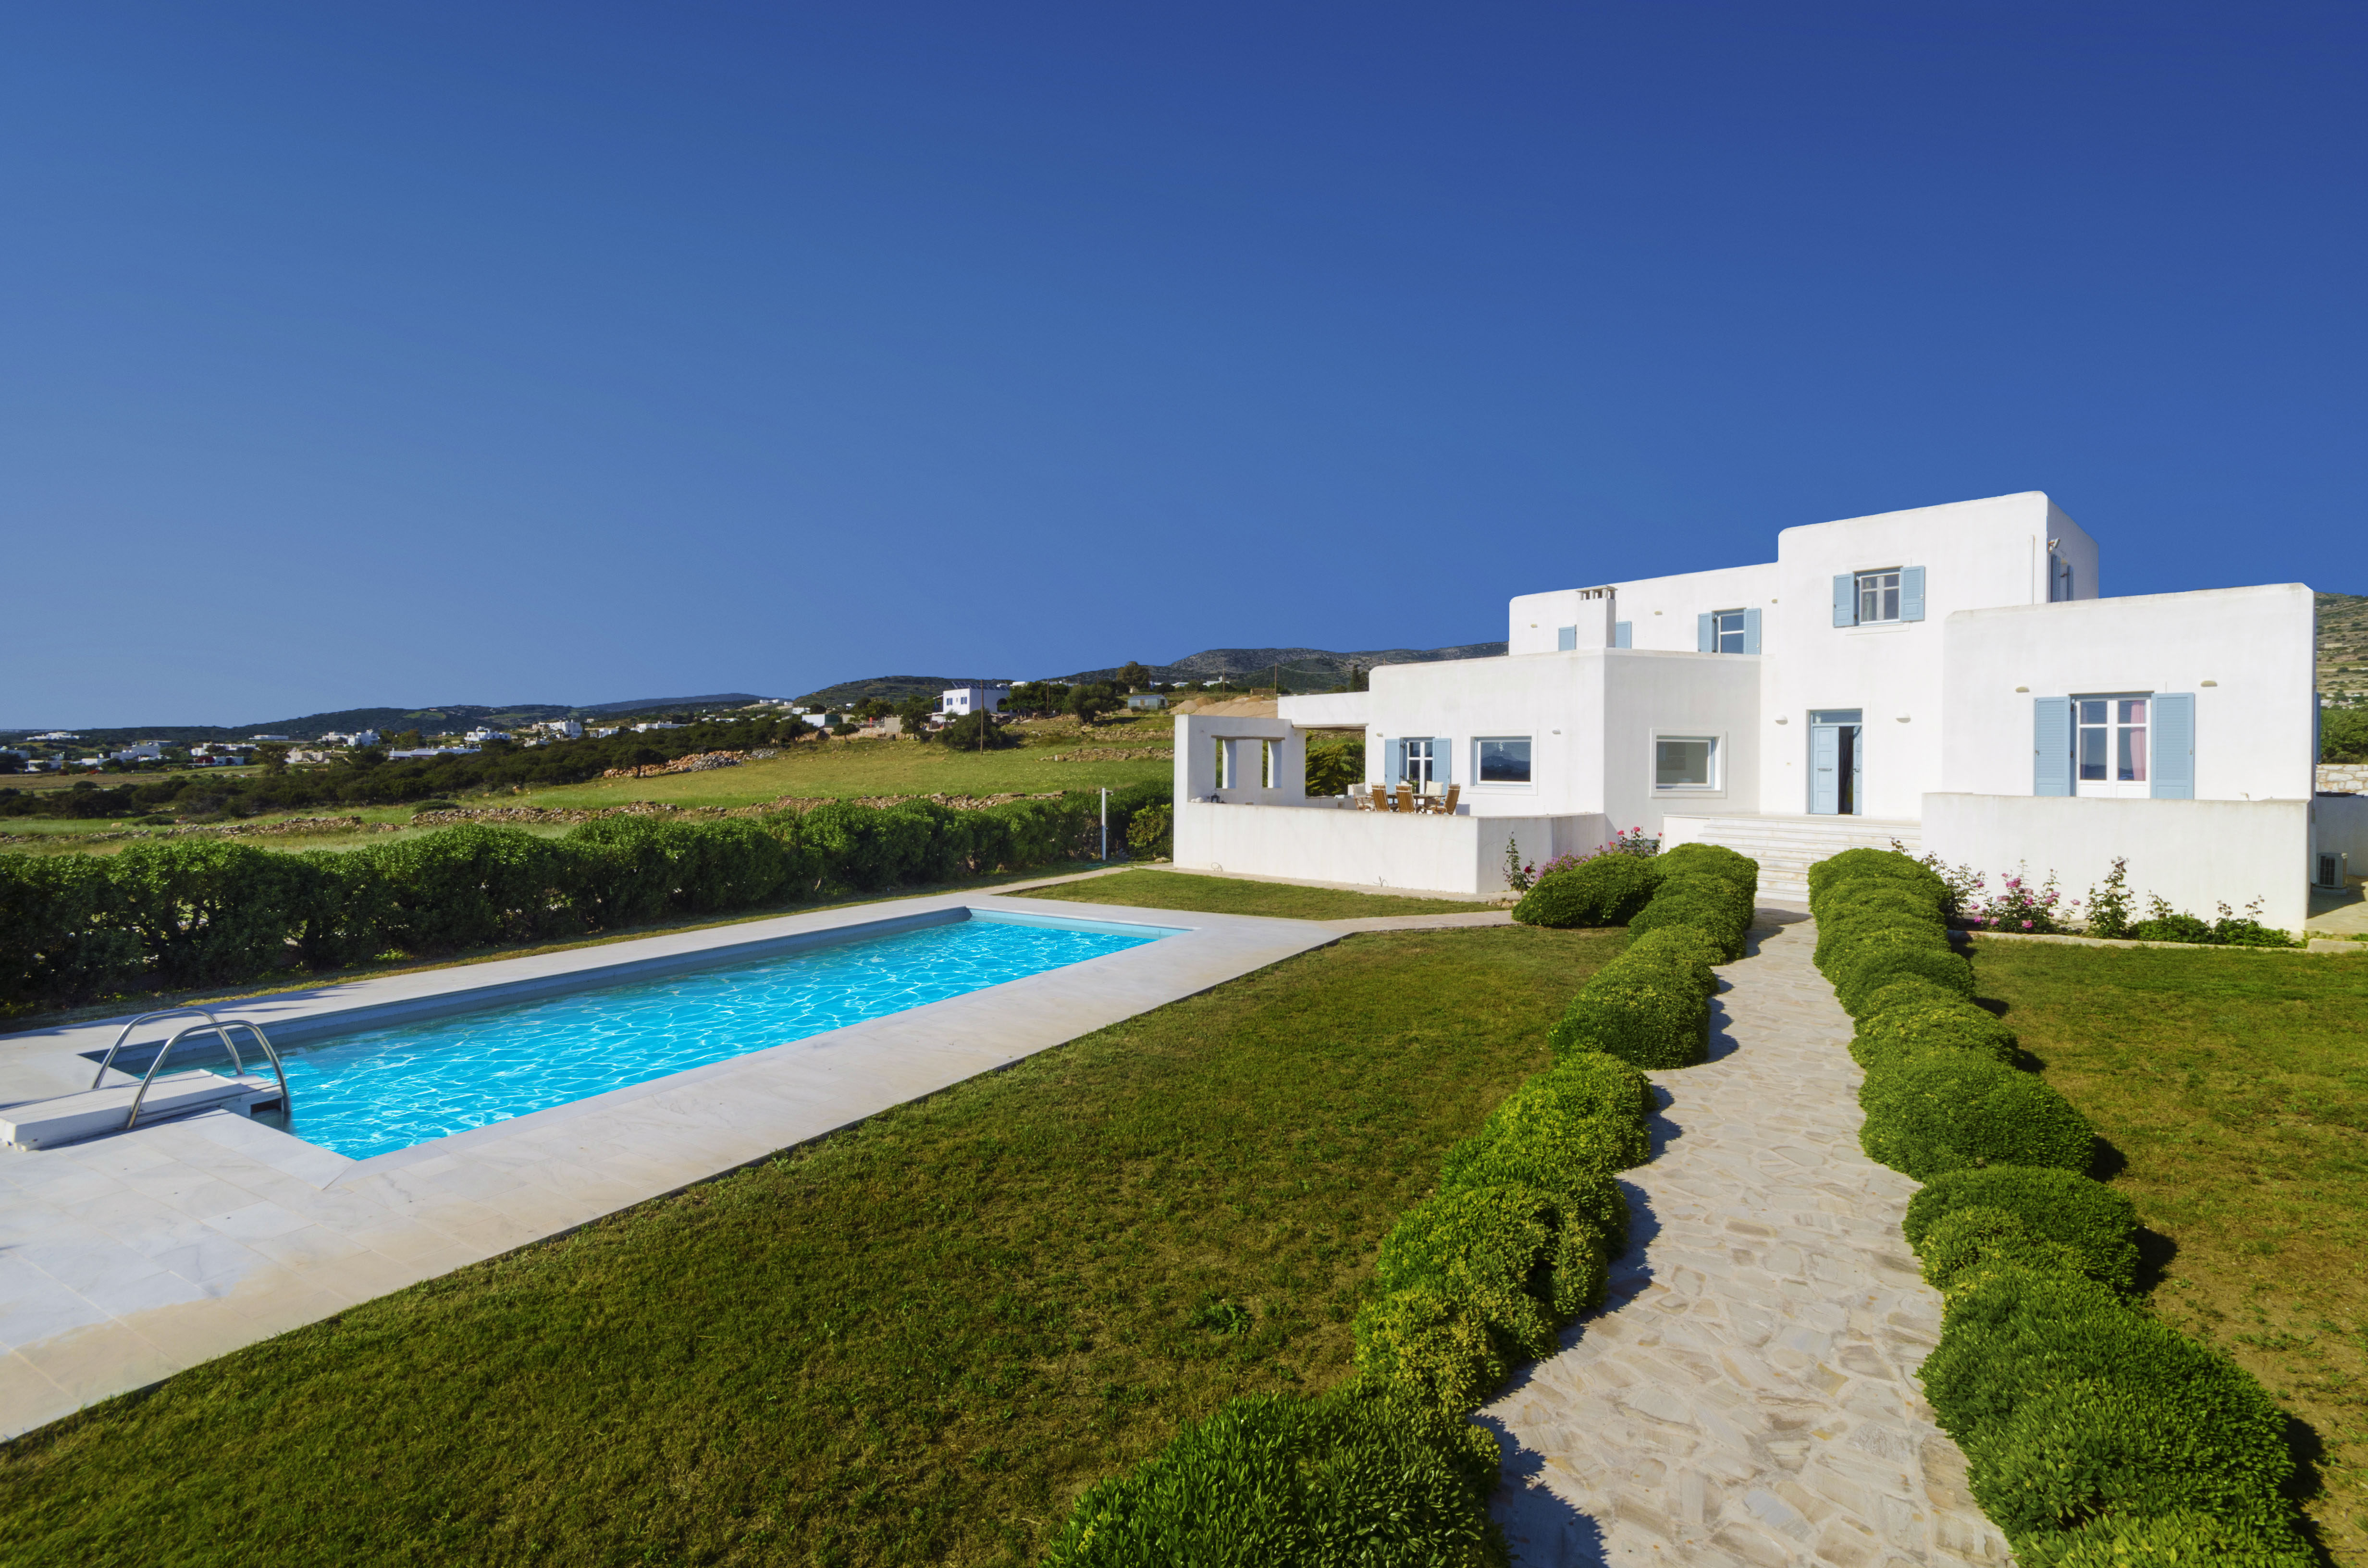 Property Image 2 - Lovely peaceful 4 bedroom villa with private pool